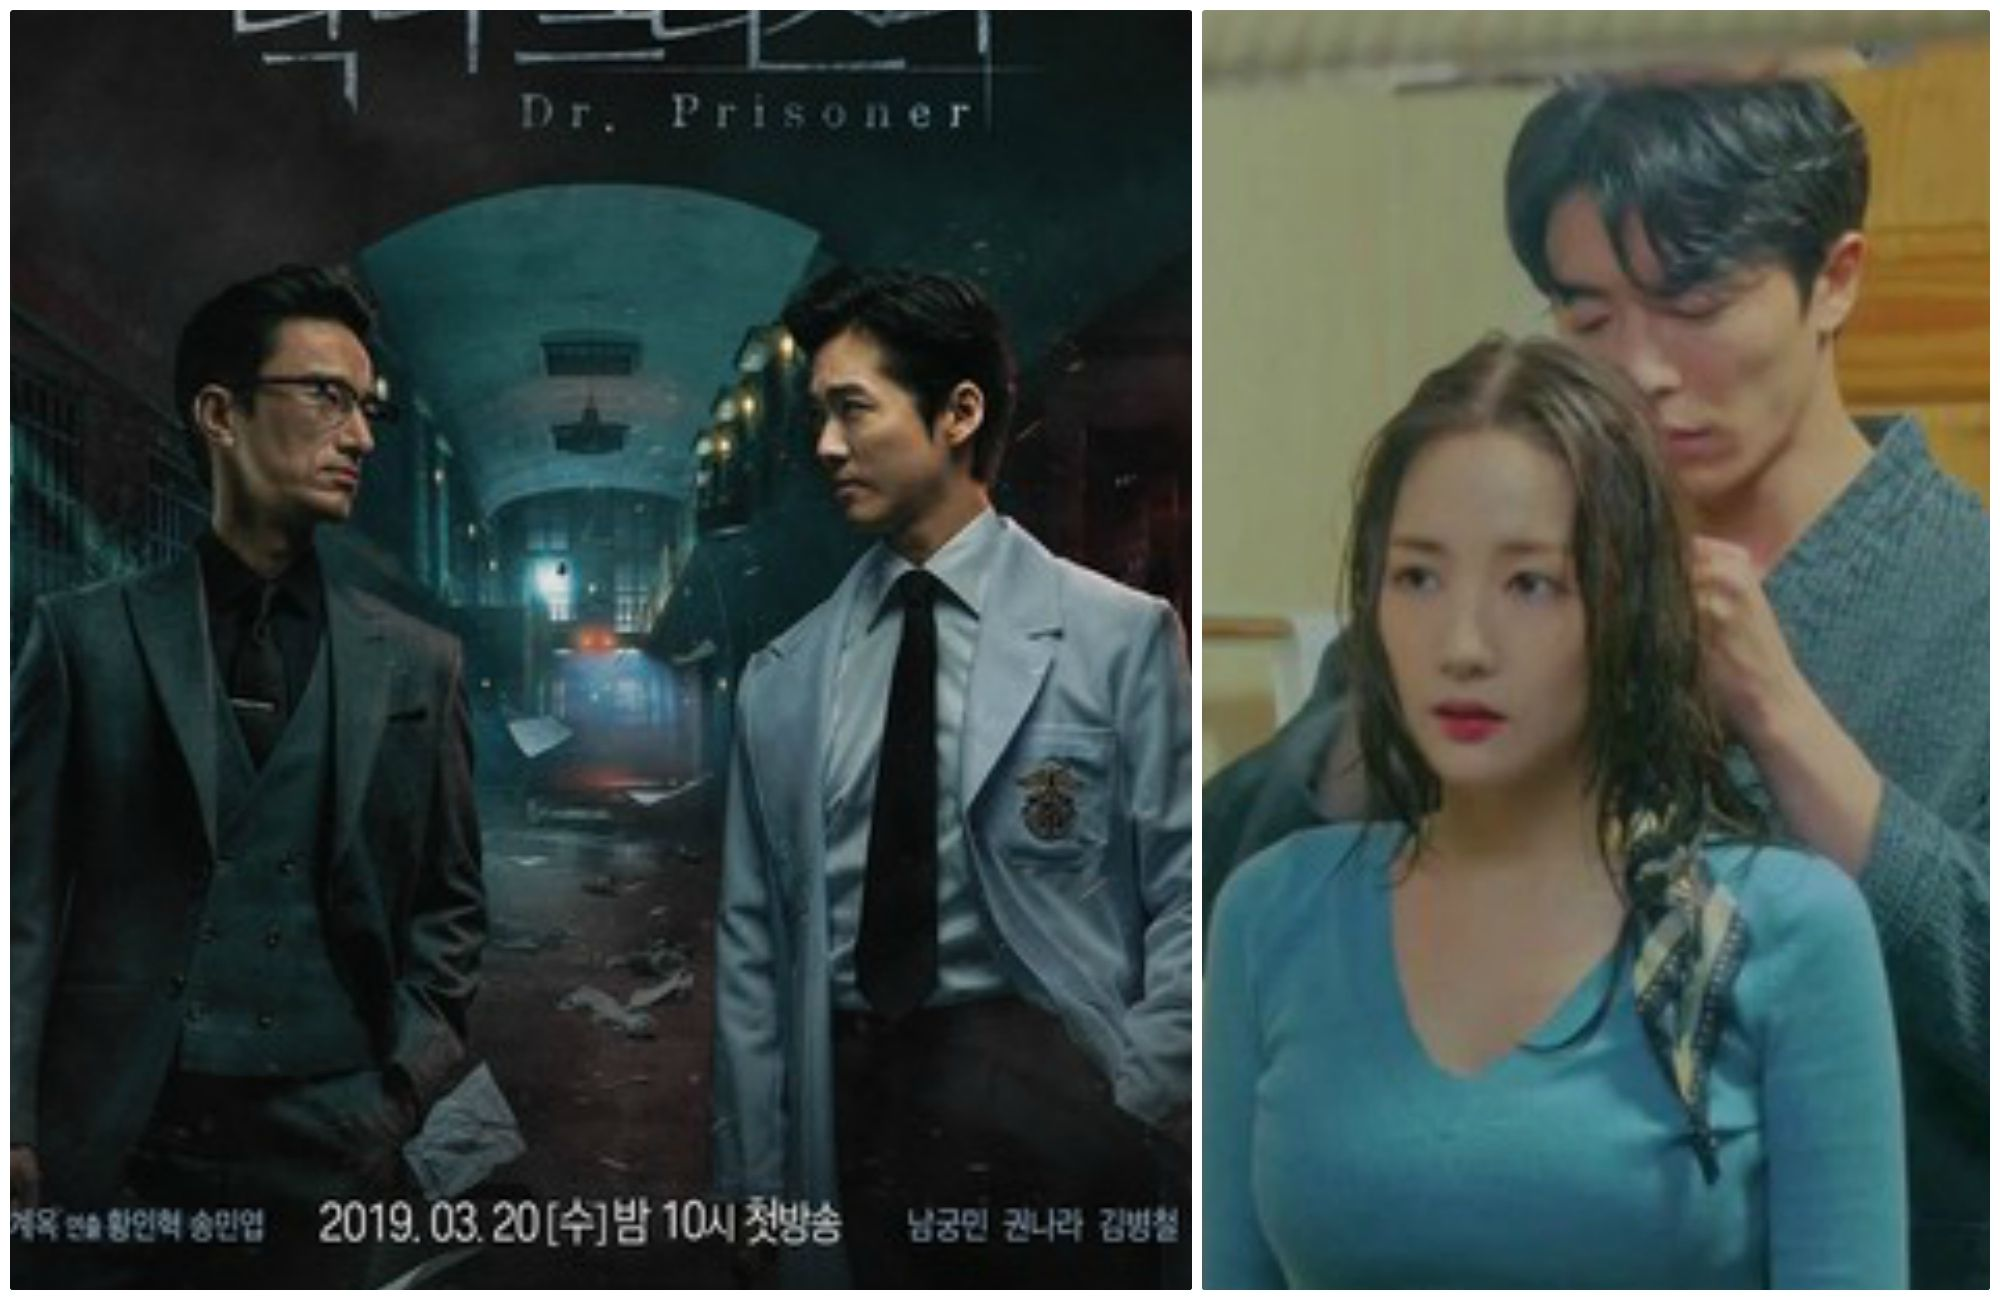 Rating 'Her Private Life' increases slightly - 'Doctor Prisoner' continues to stand the best